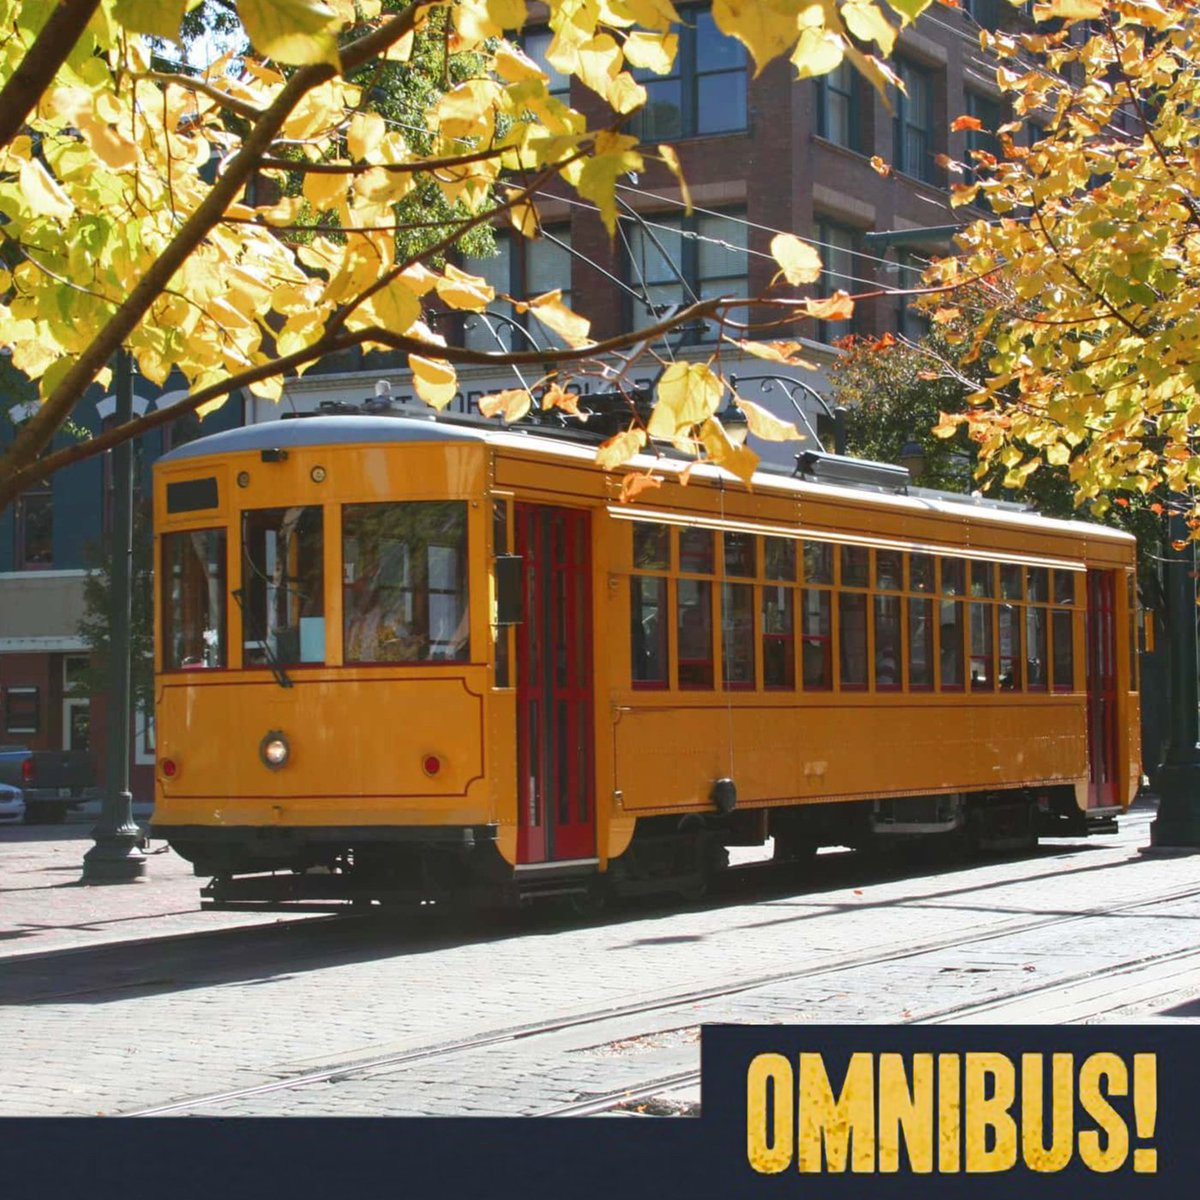 Was Who Framed Roger Rabbit right about the conspiracy to kill streetcars? Find out on the new @OmnibusProject.  https://www.omnibusproject.com/226